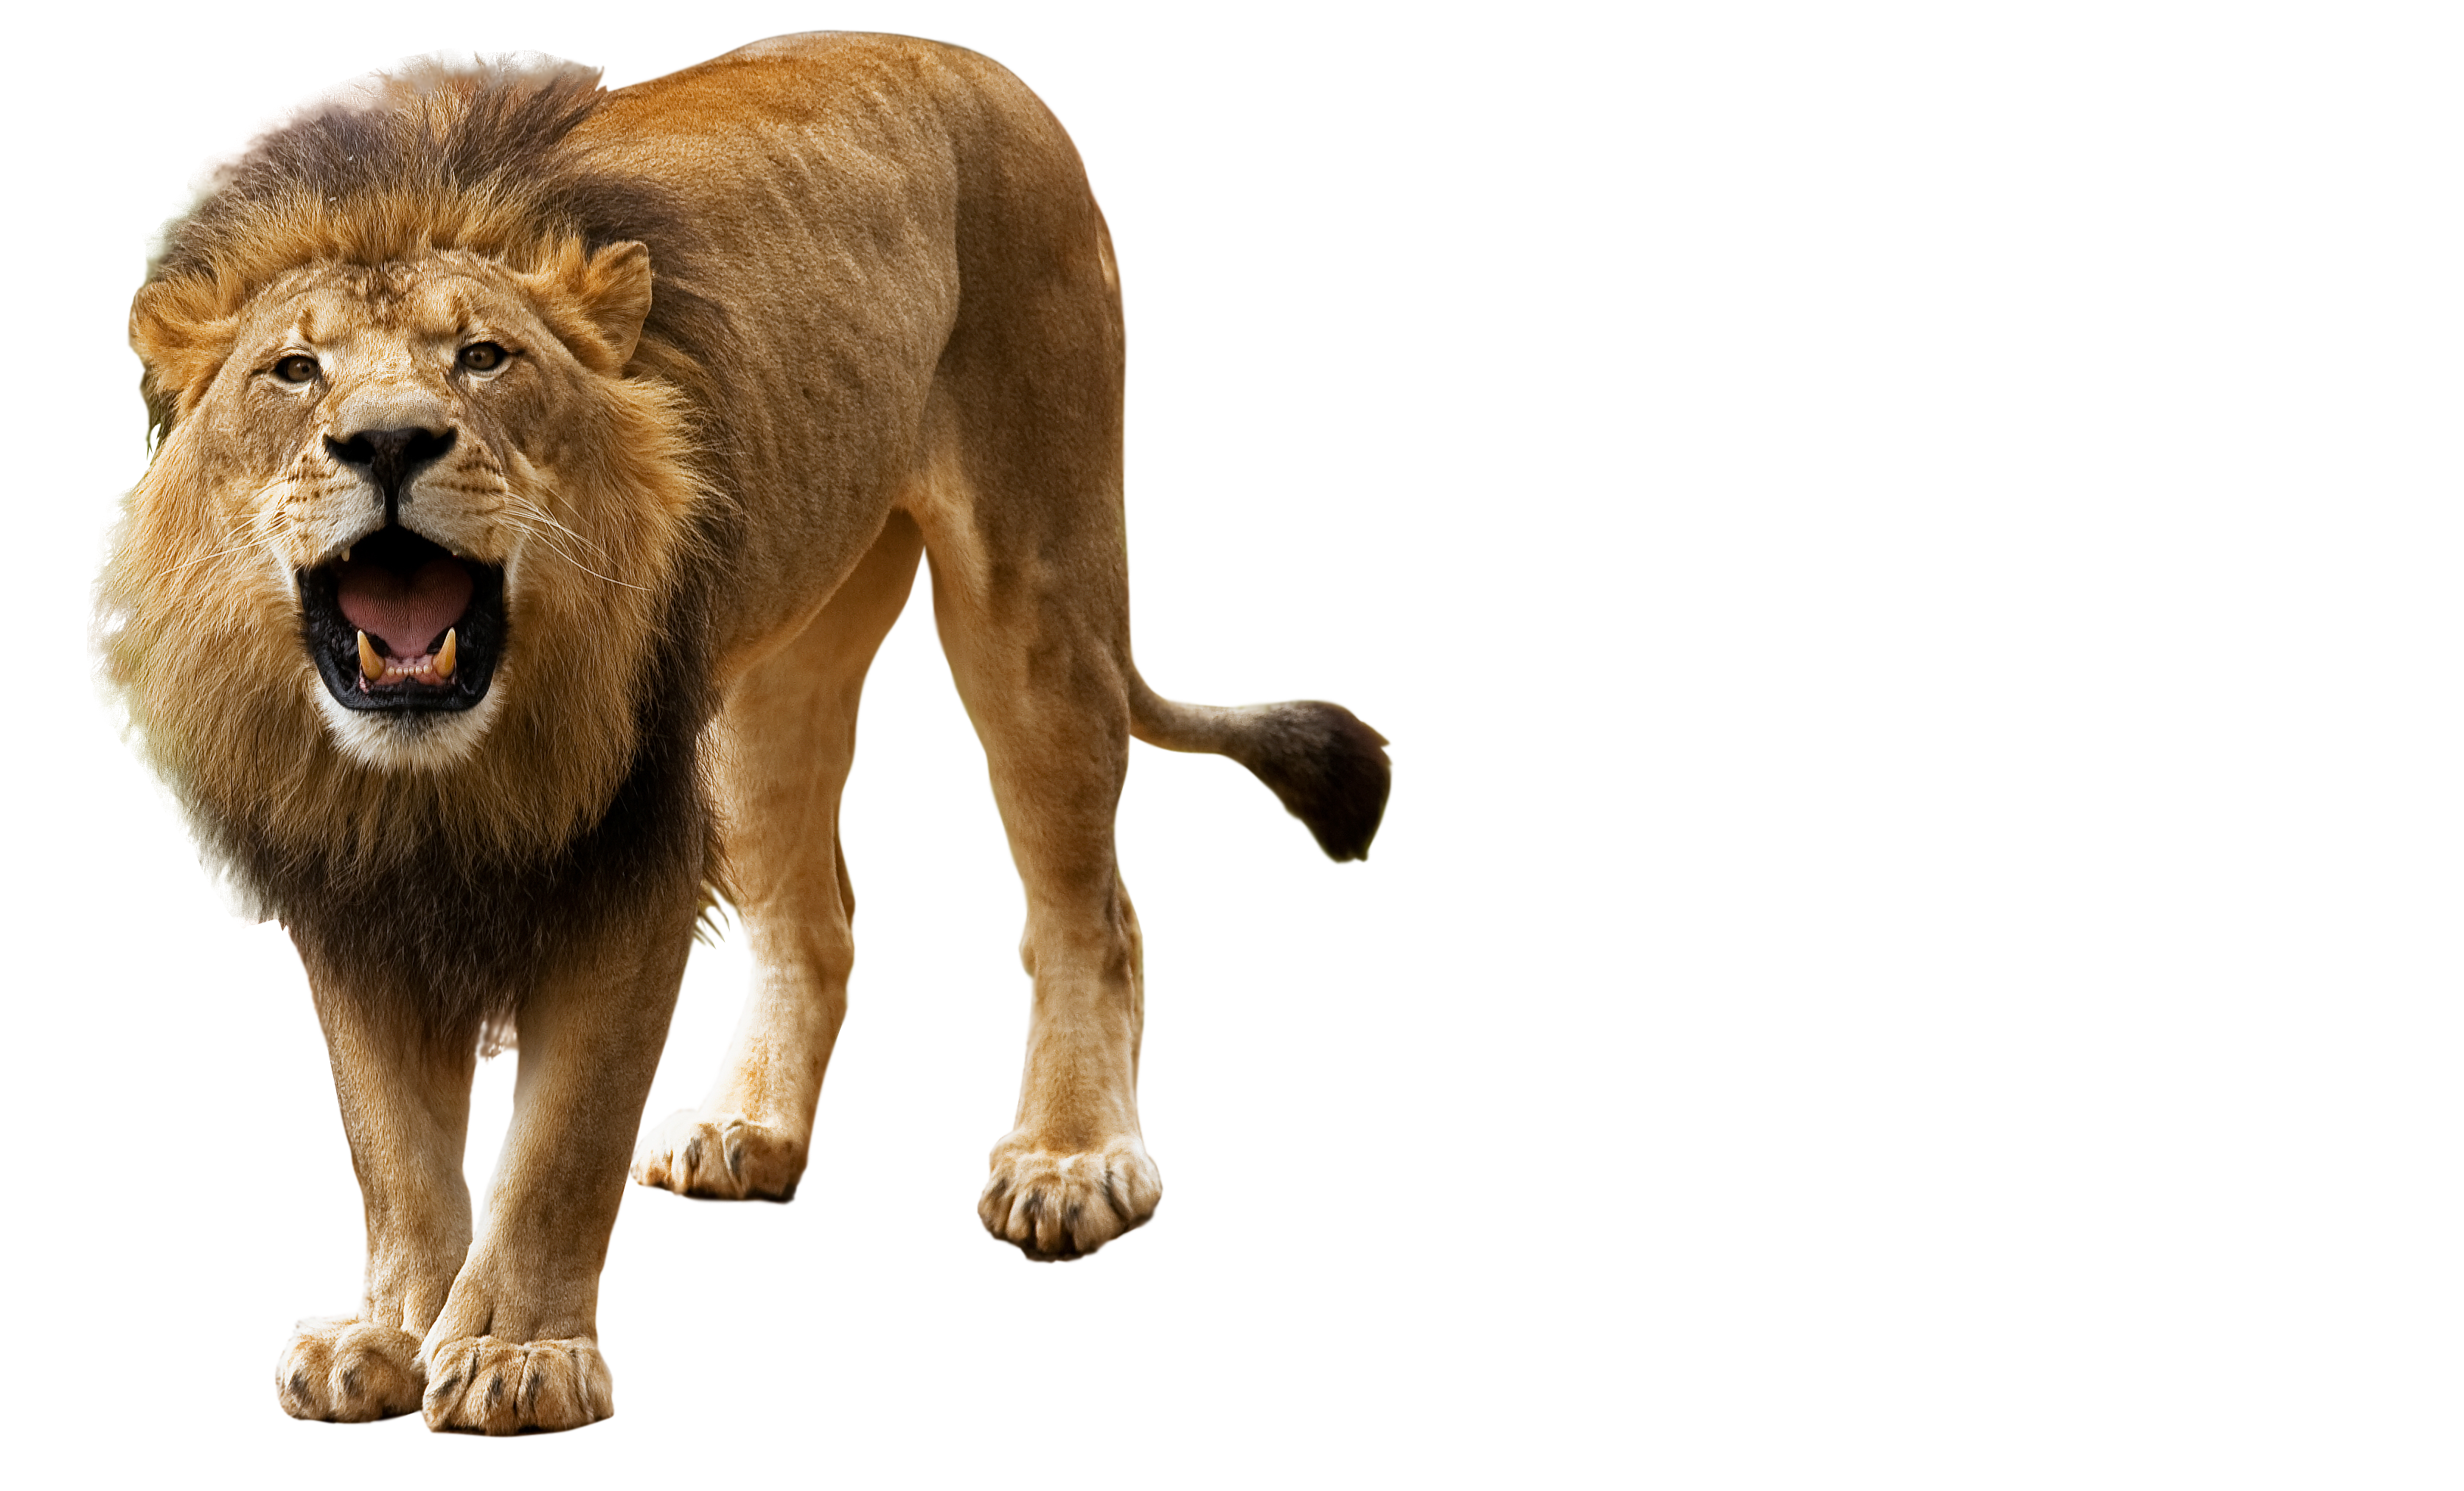 Roar, angry lion png #42280.